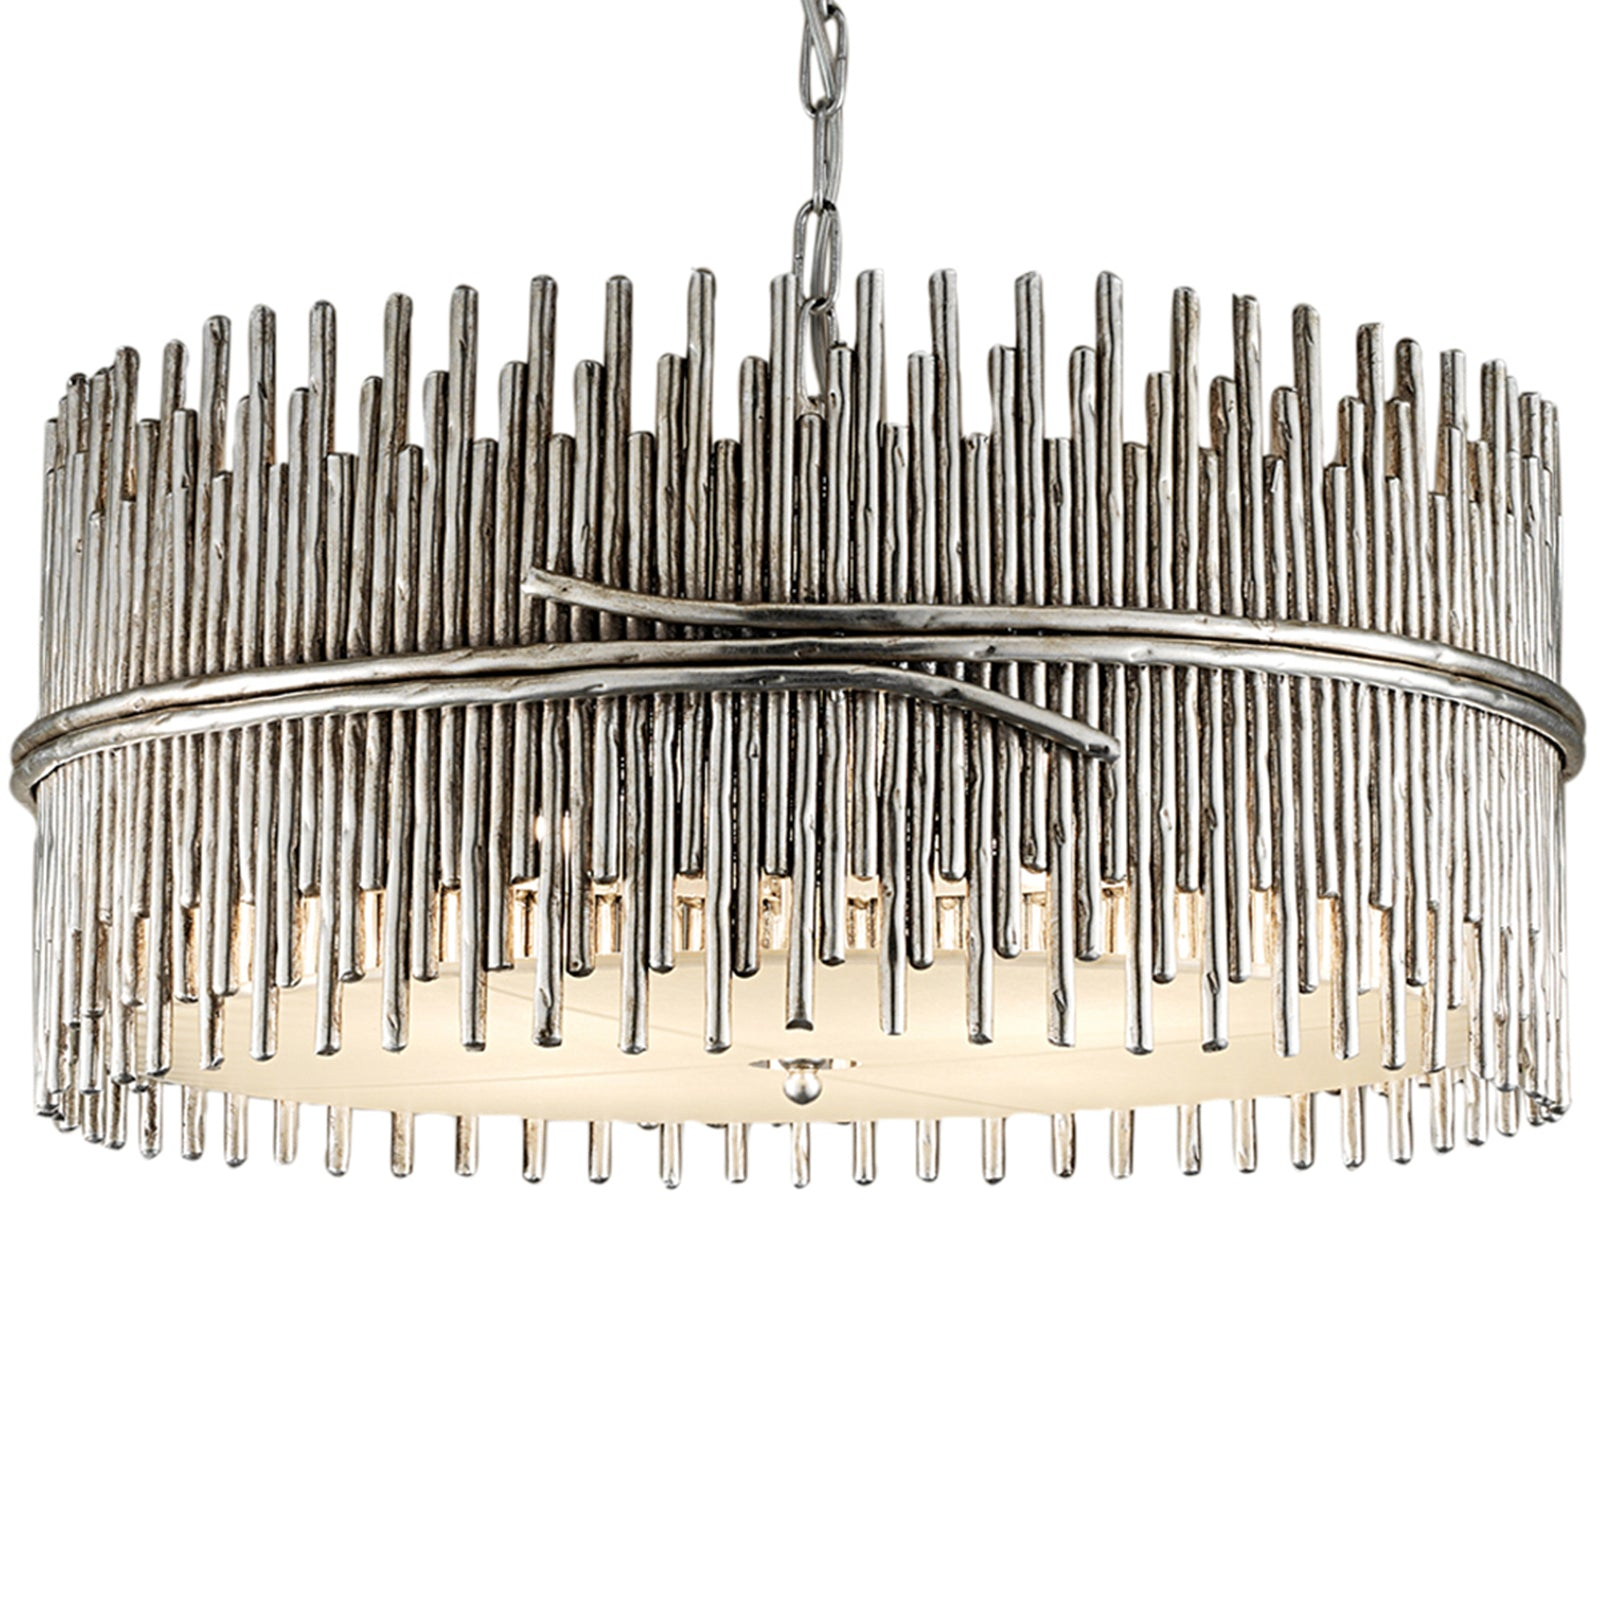 Silver Sculpture Chandelier